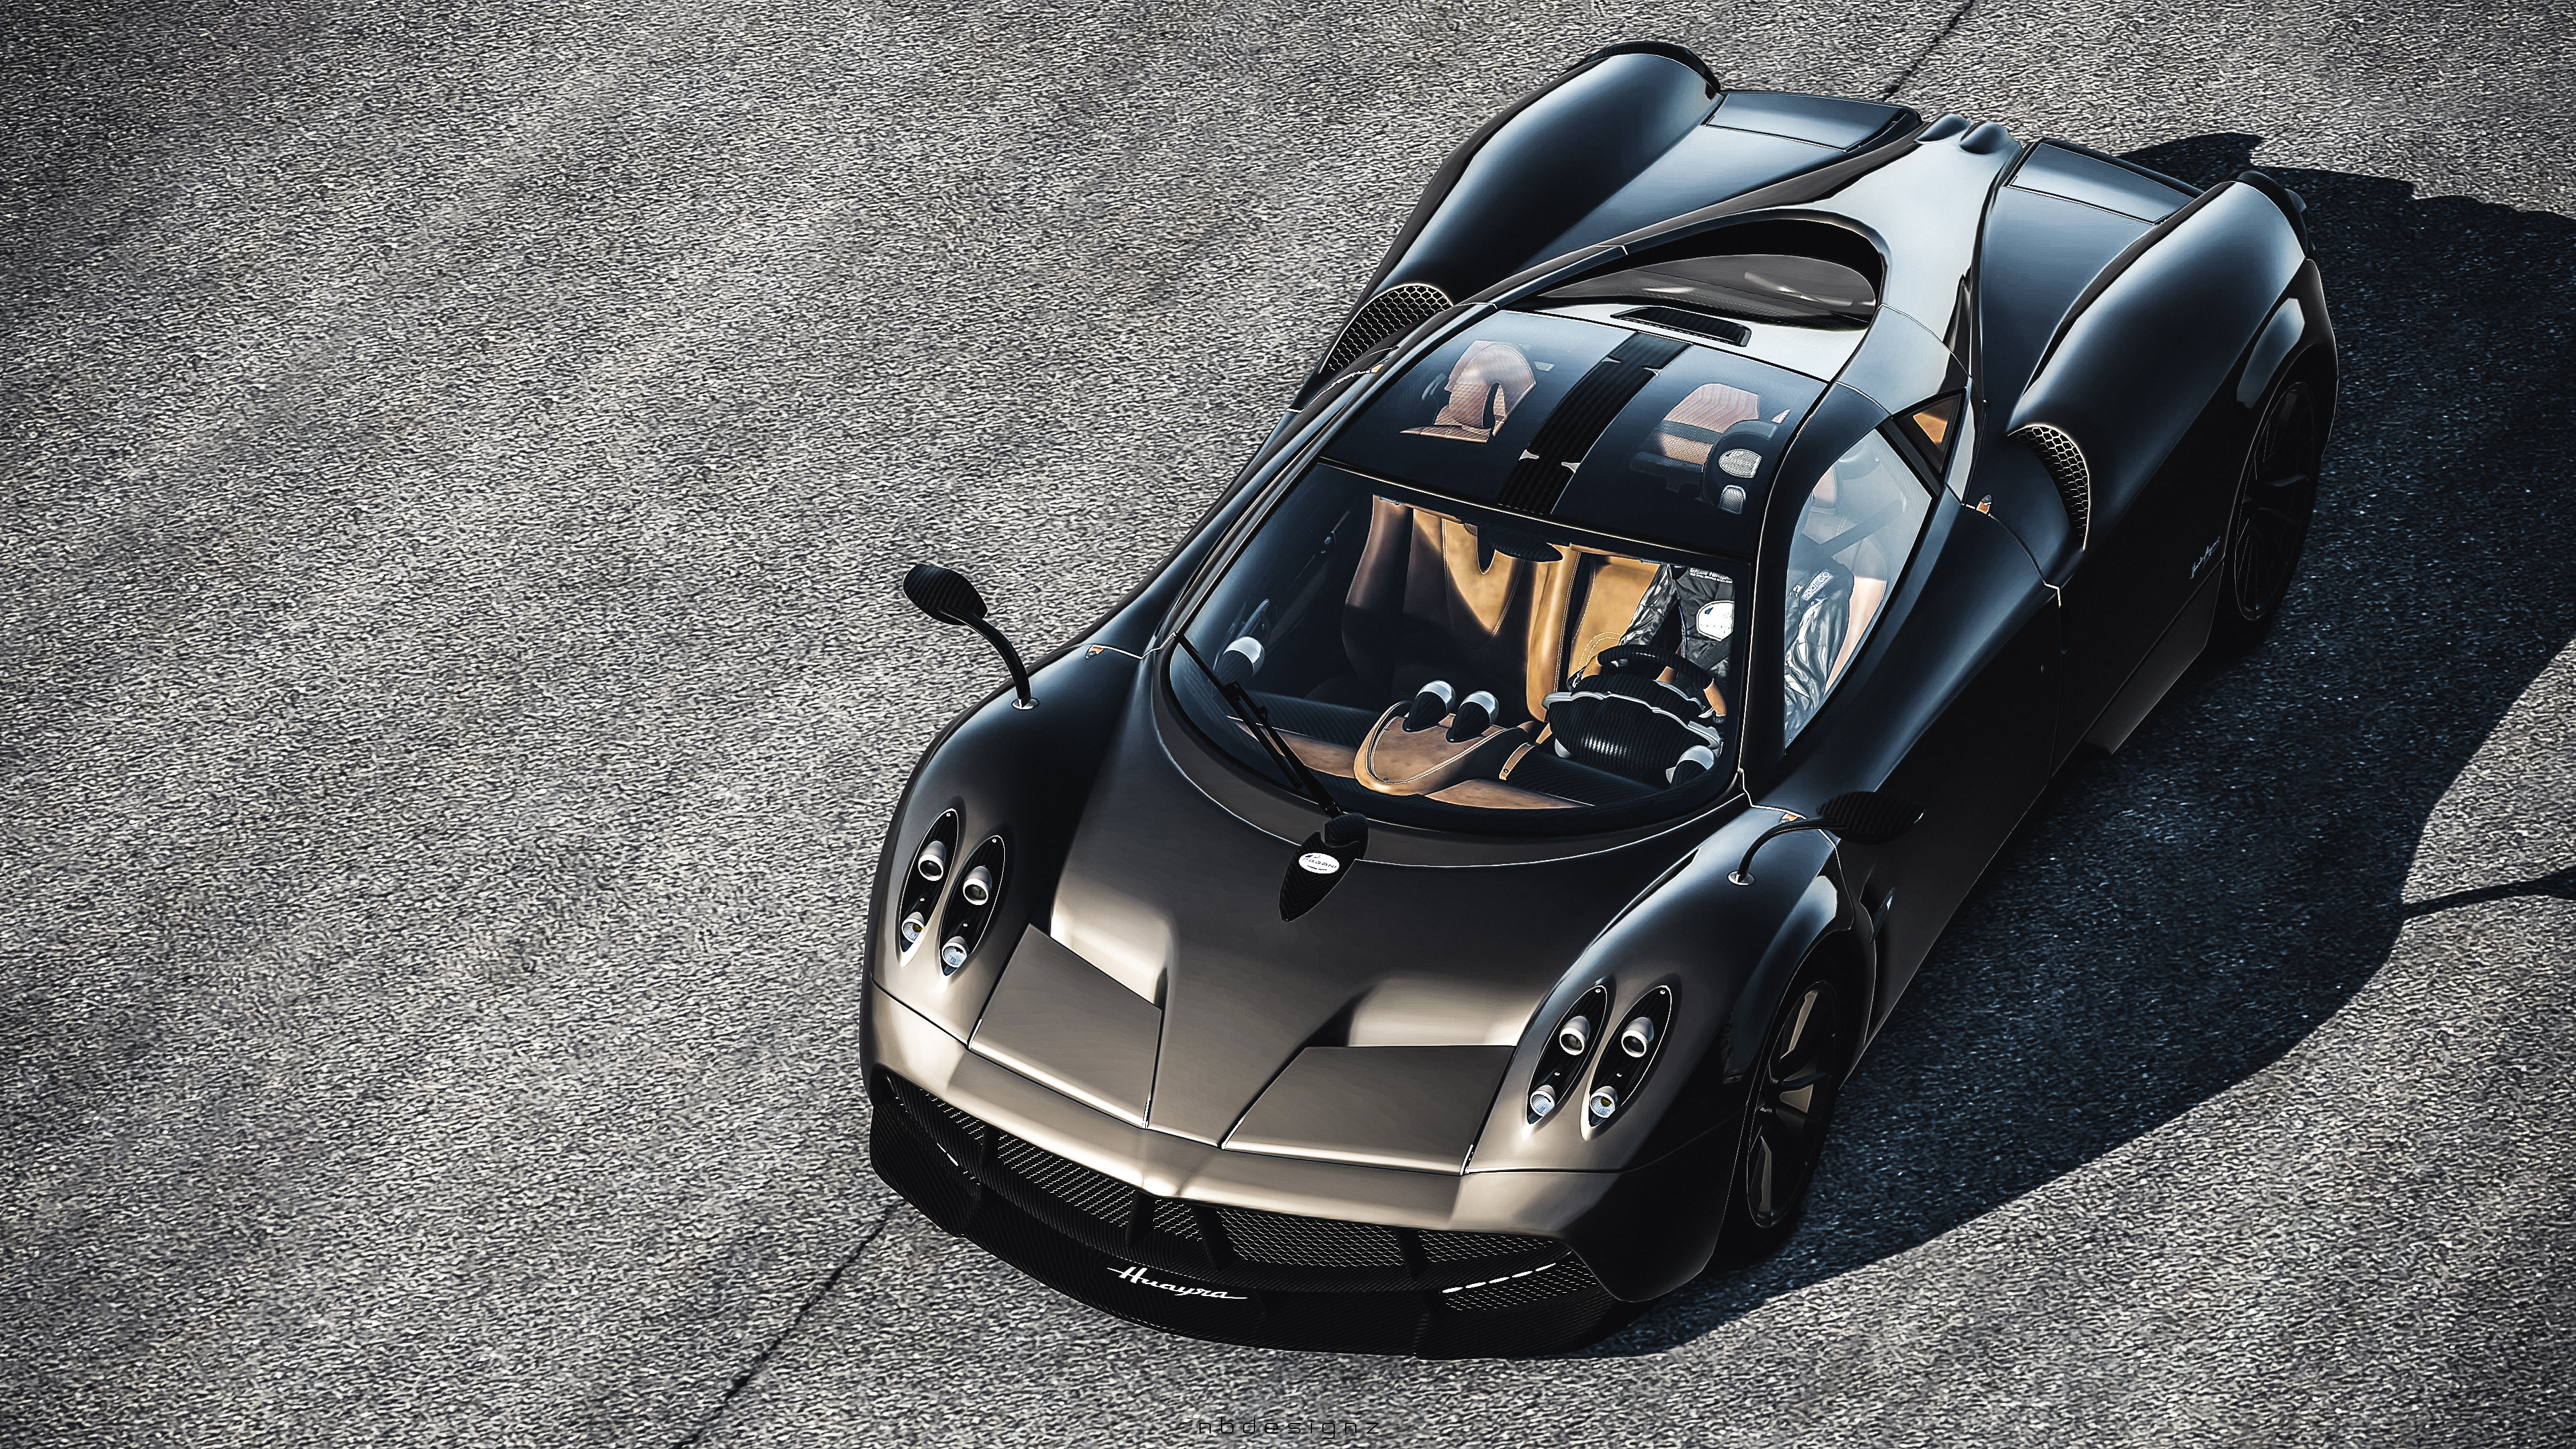 Pagani Huayra Gran Turismo 6 Wallpaper Hd Car Wallpapers